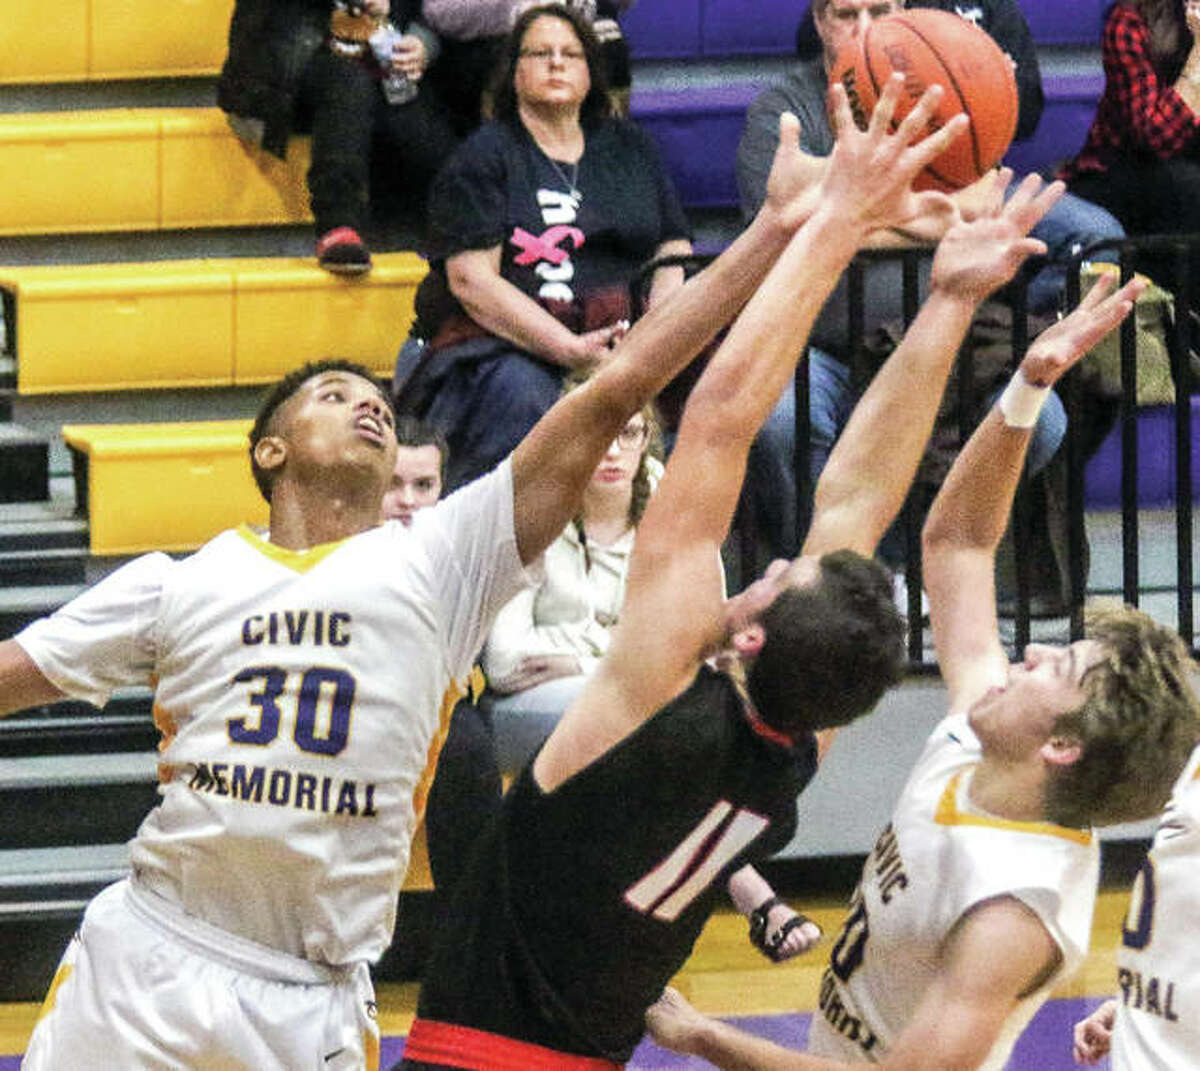 Civic Memorial's LaQuan Adams (30) battles for a rebound with Highland's Sam LaPorta (11) in Mississippi Valley Conference action Tuesday night in Bethalto. Adams scored 24 points, but Highland edged the Eagles 58-57 in overtime.